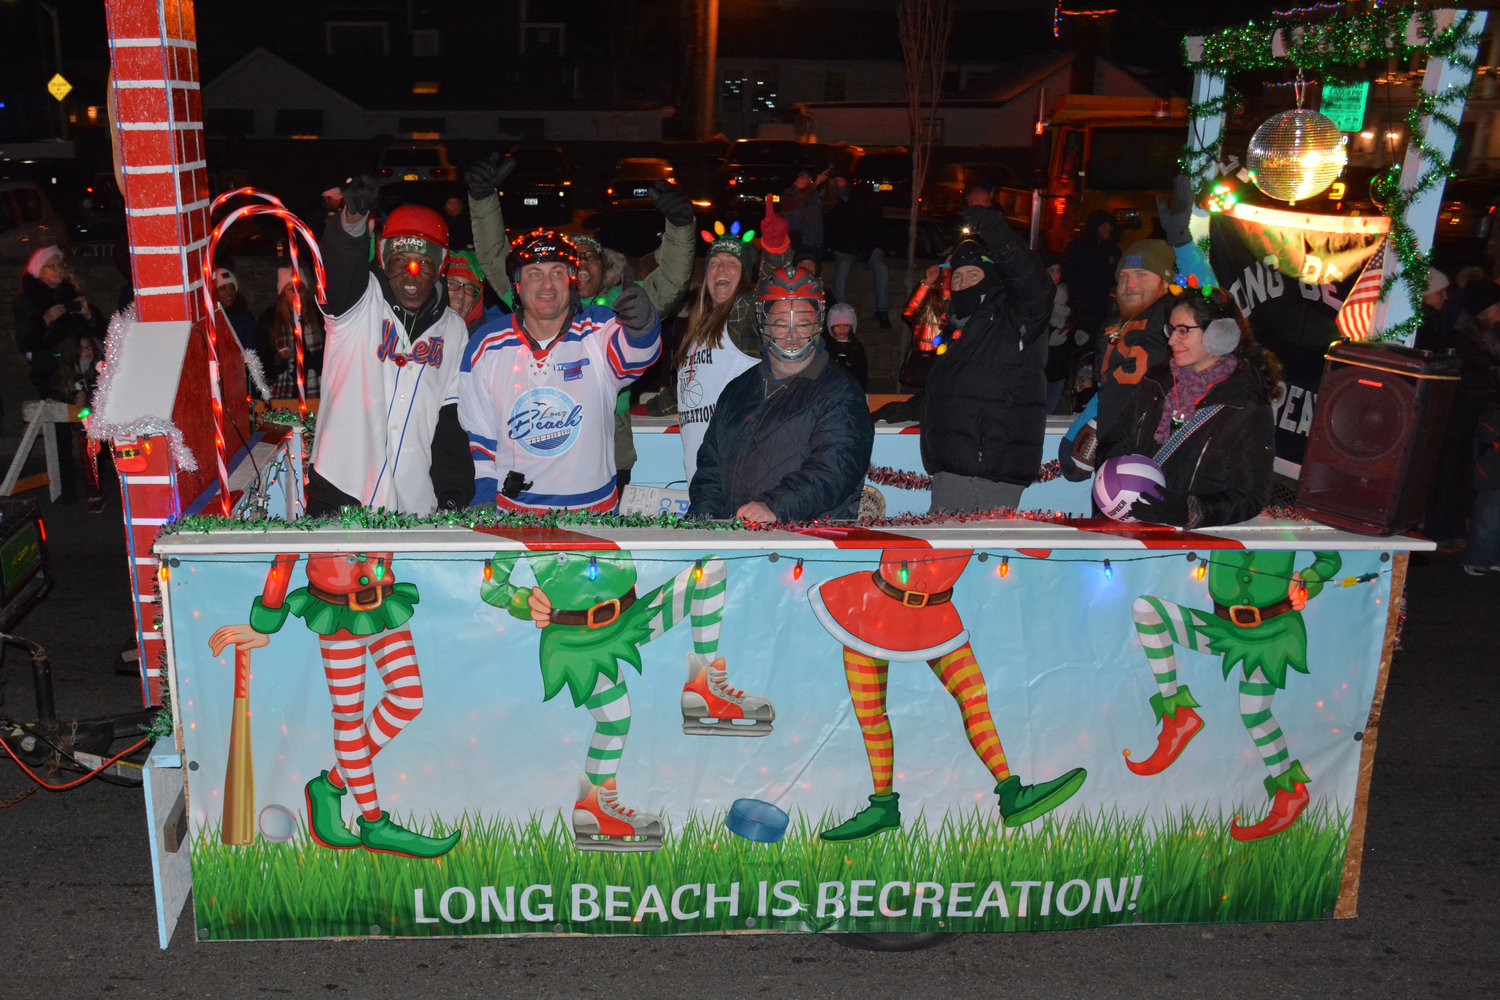 The Rec's float was among the more than 80 antique cars, fire trucks, floats and bicycles decorated in festive holiday lights made their way down the parade route from Ohio to New York avenues.